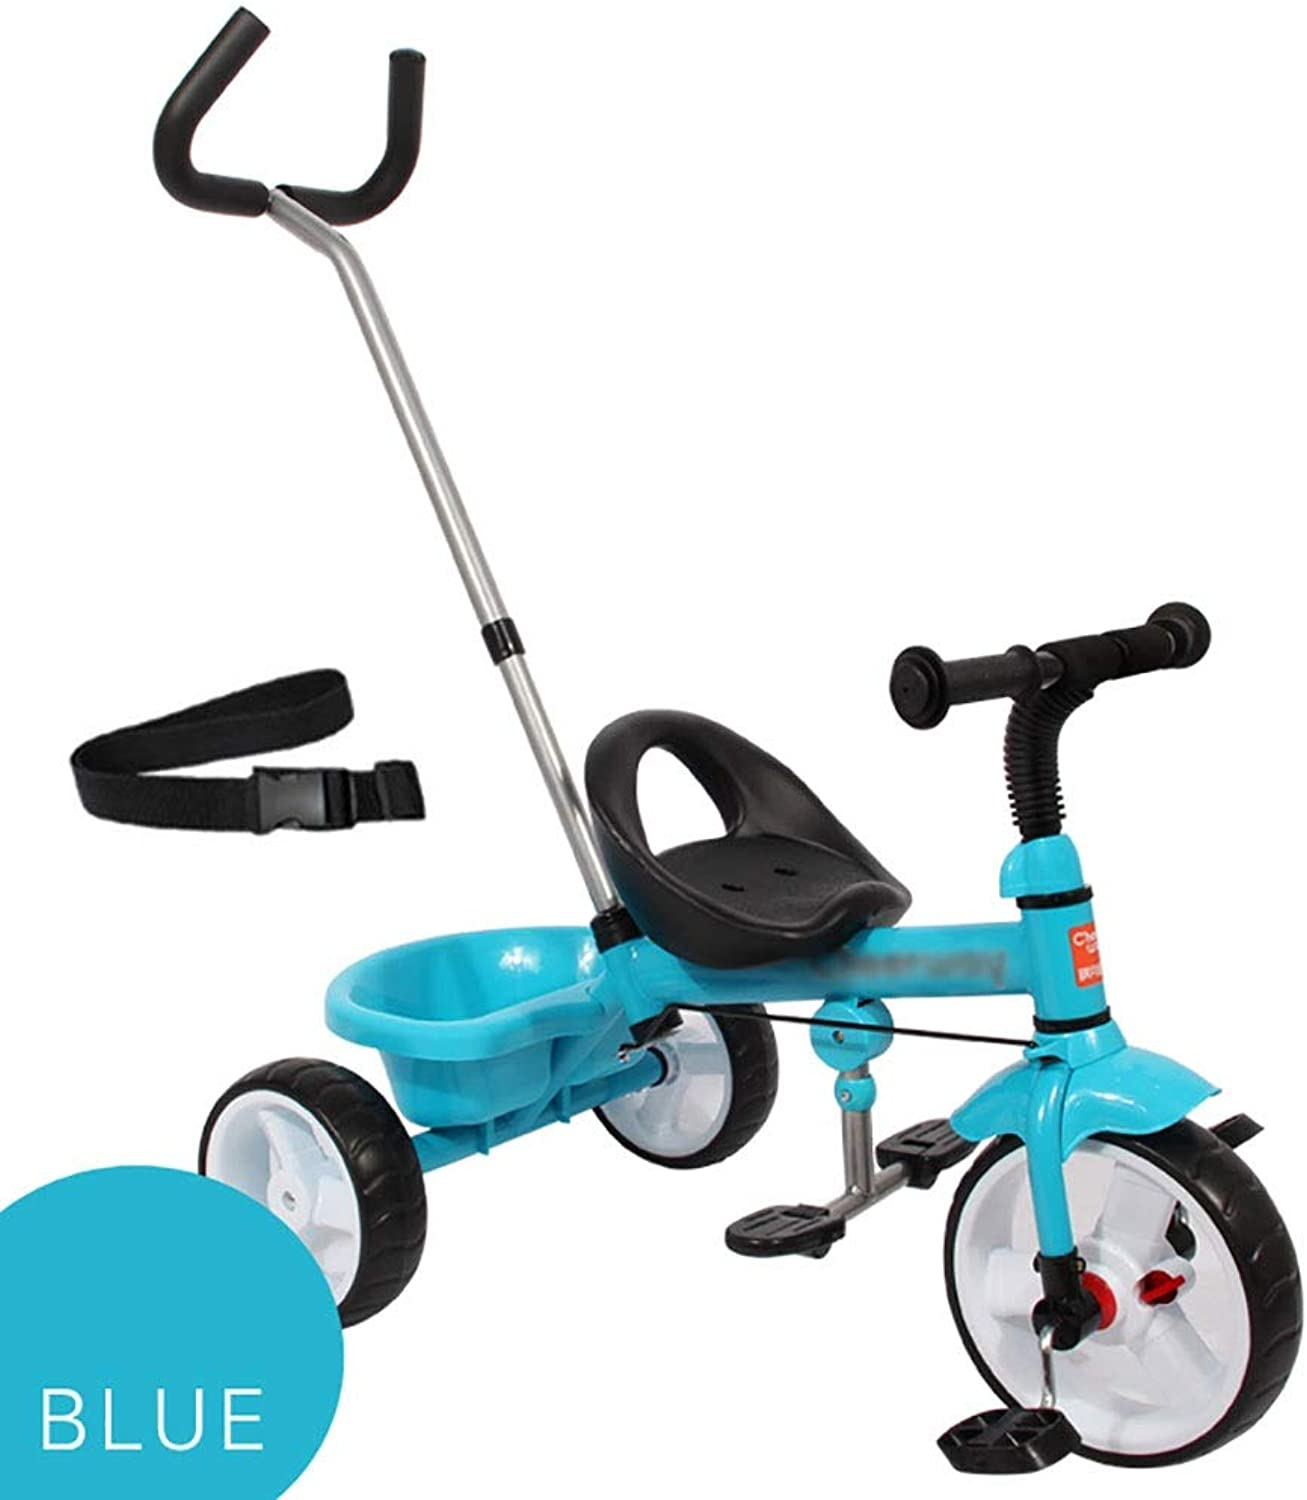 Trike Kids Trike, Baby Infant Ride-On Pedal Bicycle, Adjustable Push Handle Congreenible Tricycle Stroller